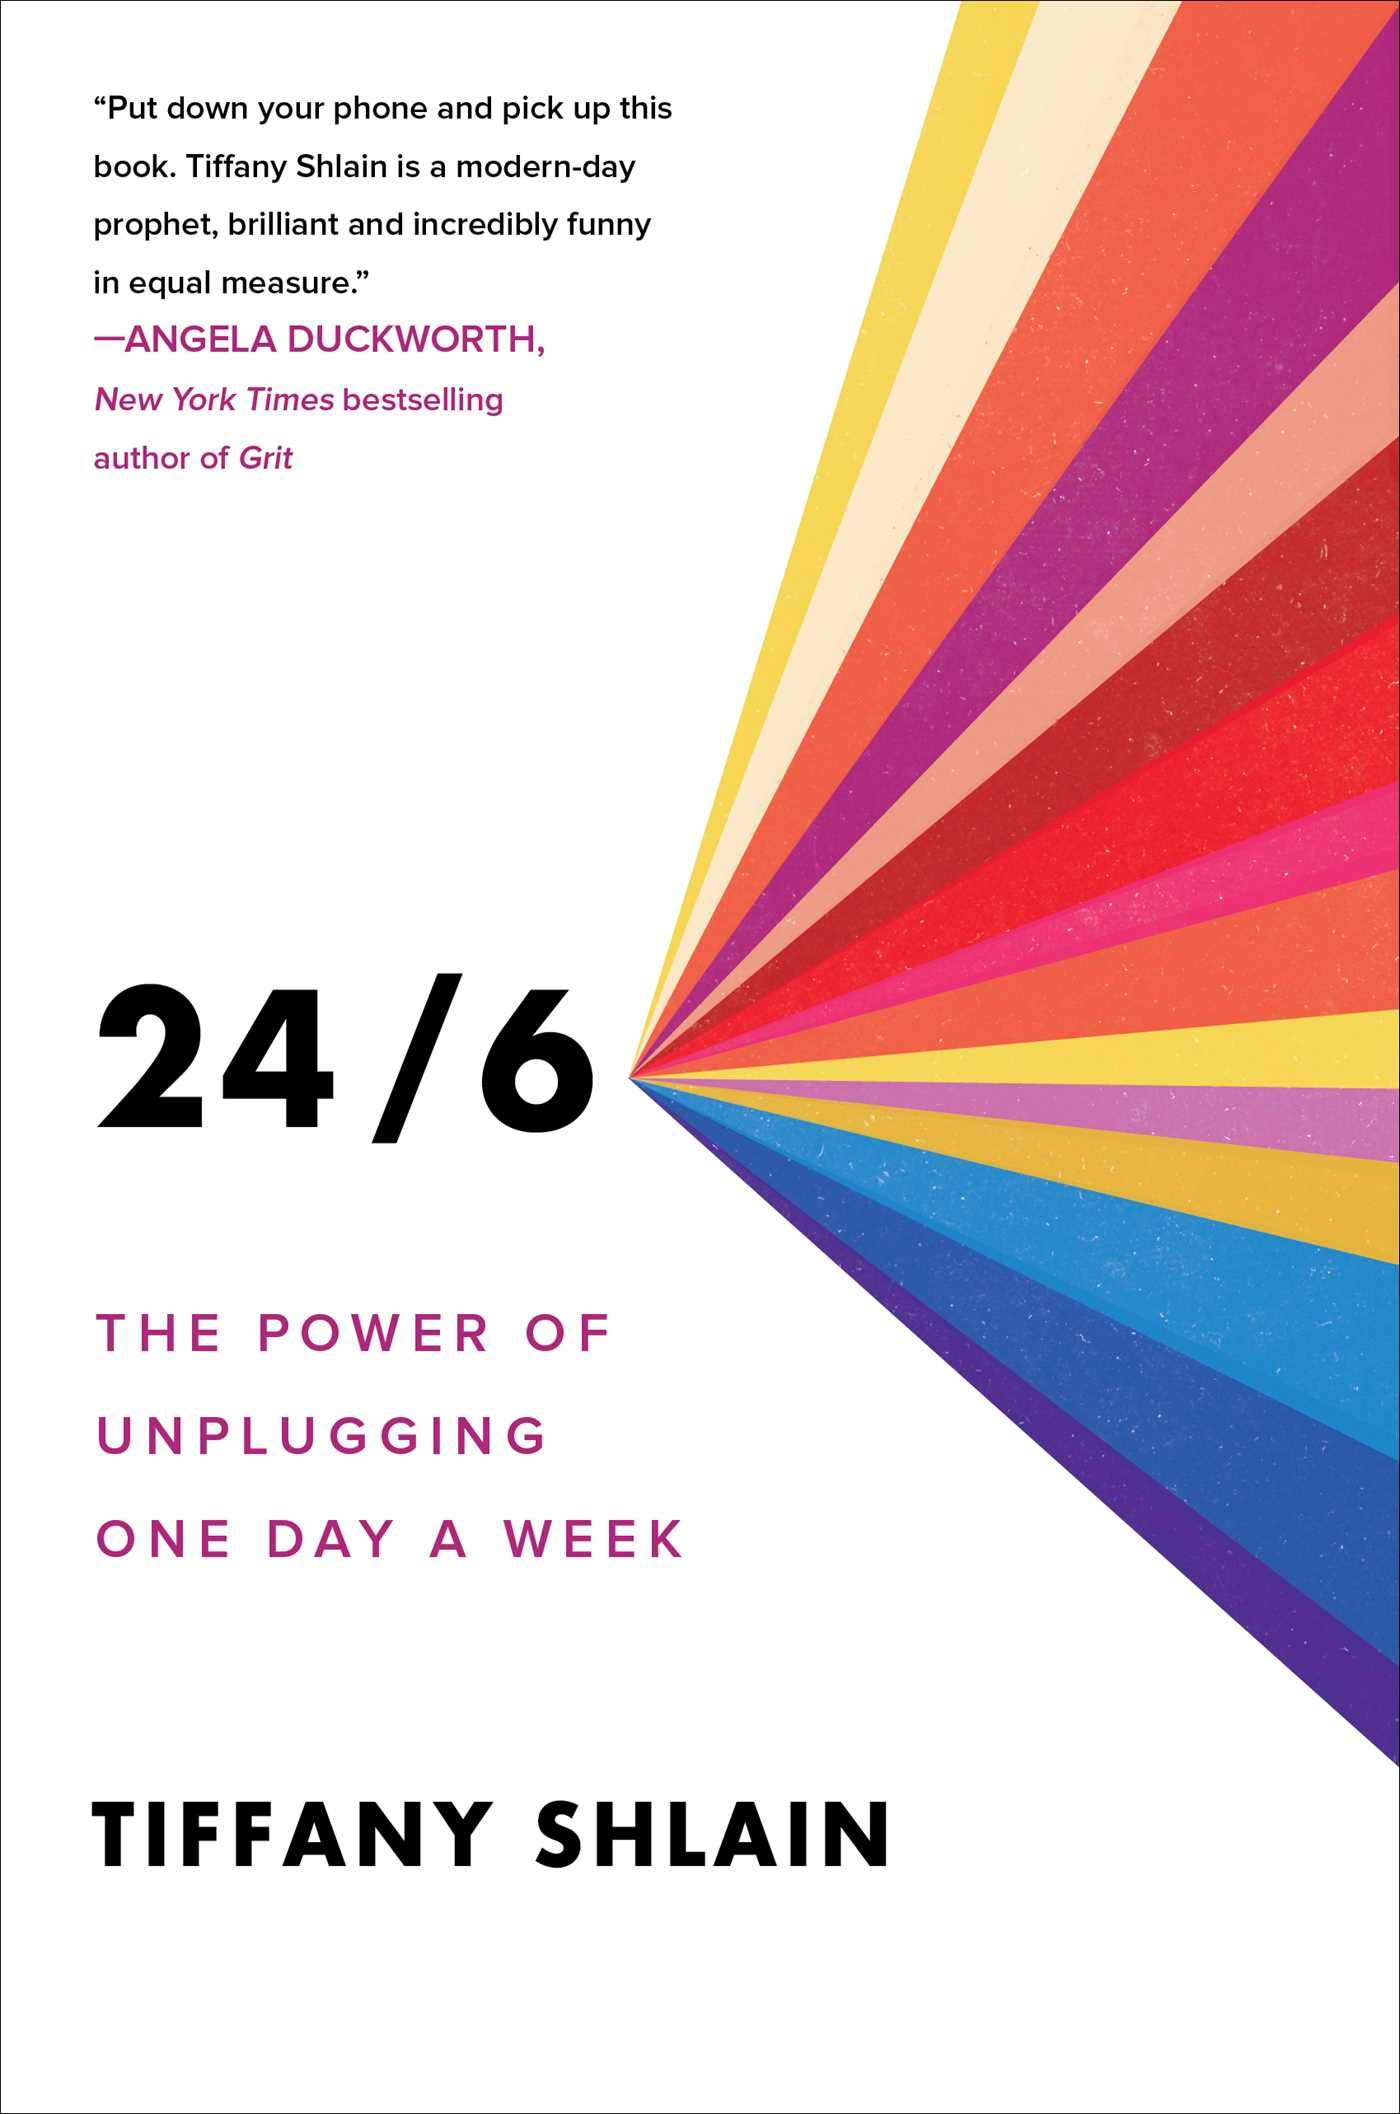 The Power Of Unplugging One Day A Week